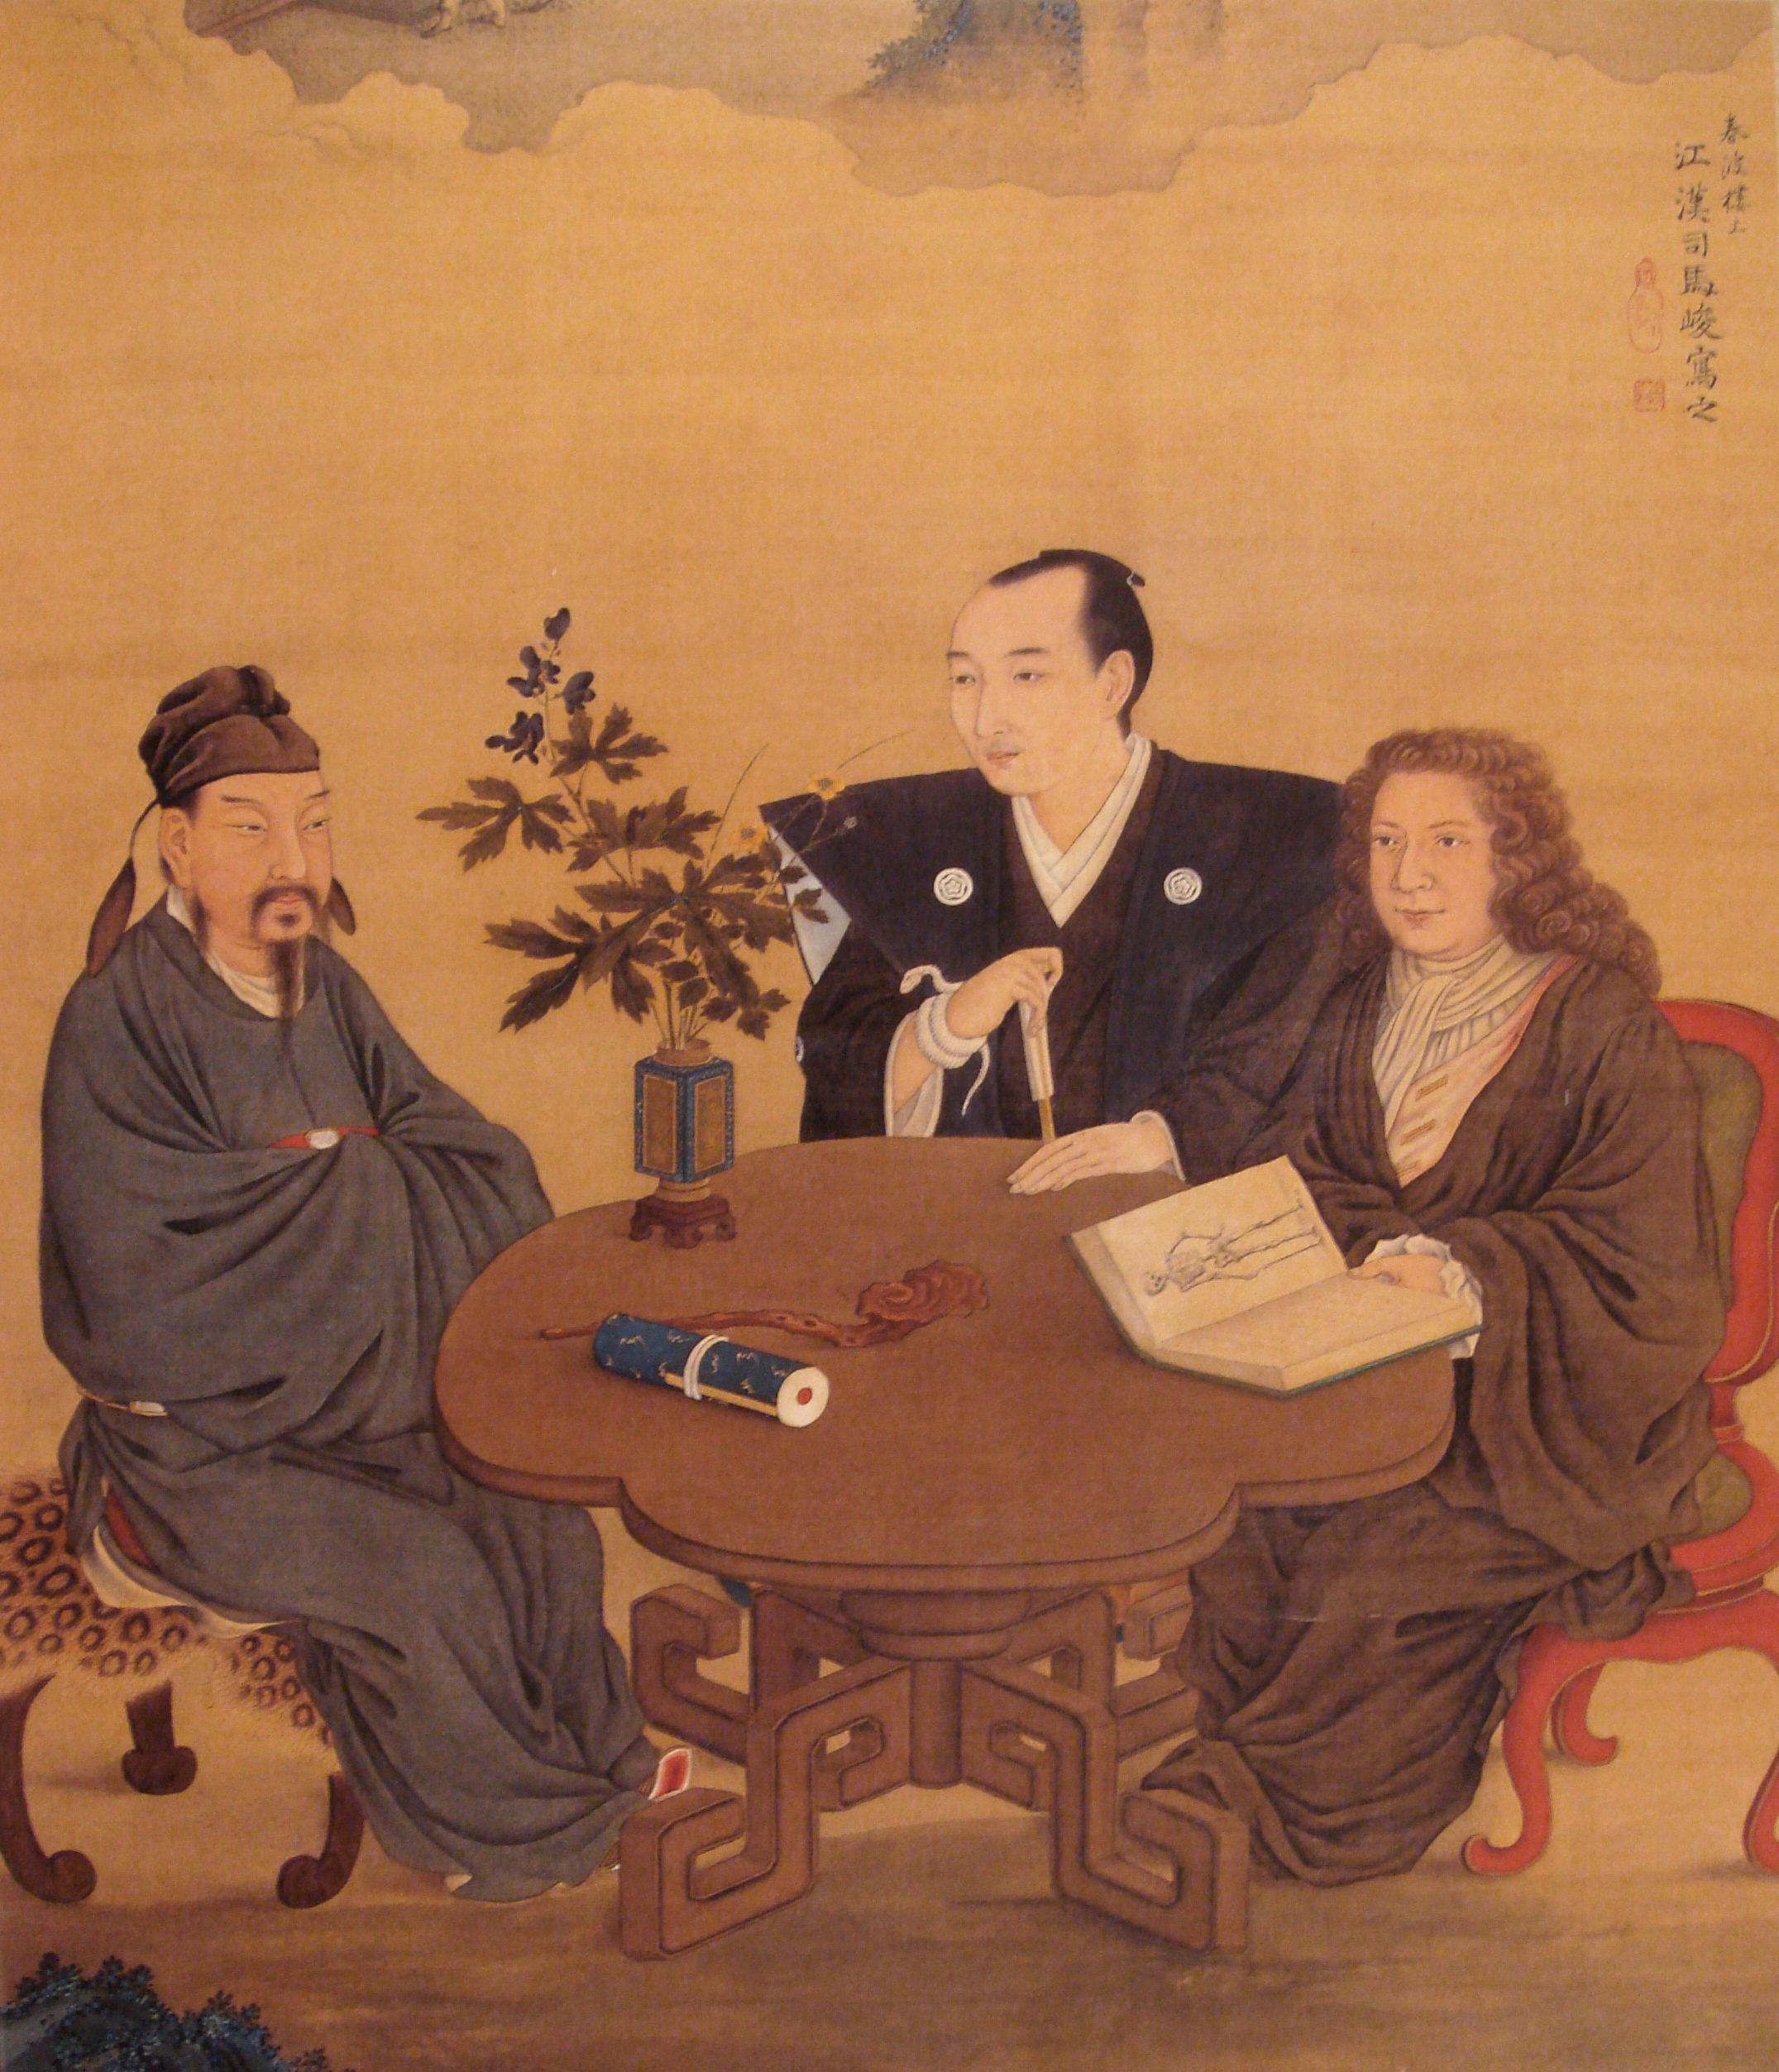 Shiba_Kokan_A_meeting_of_Japan_China_and_the_West_late_18th_century.jpg (2151×2505)